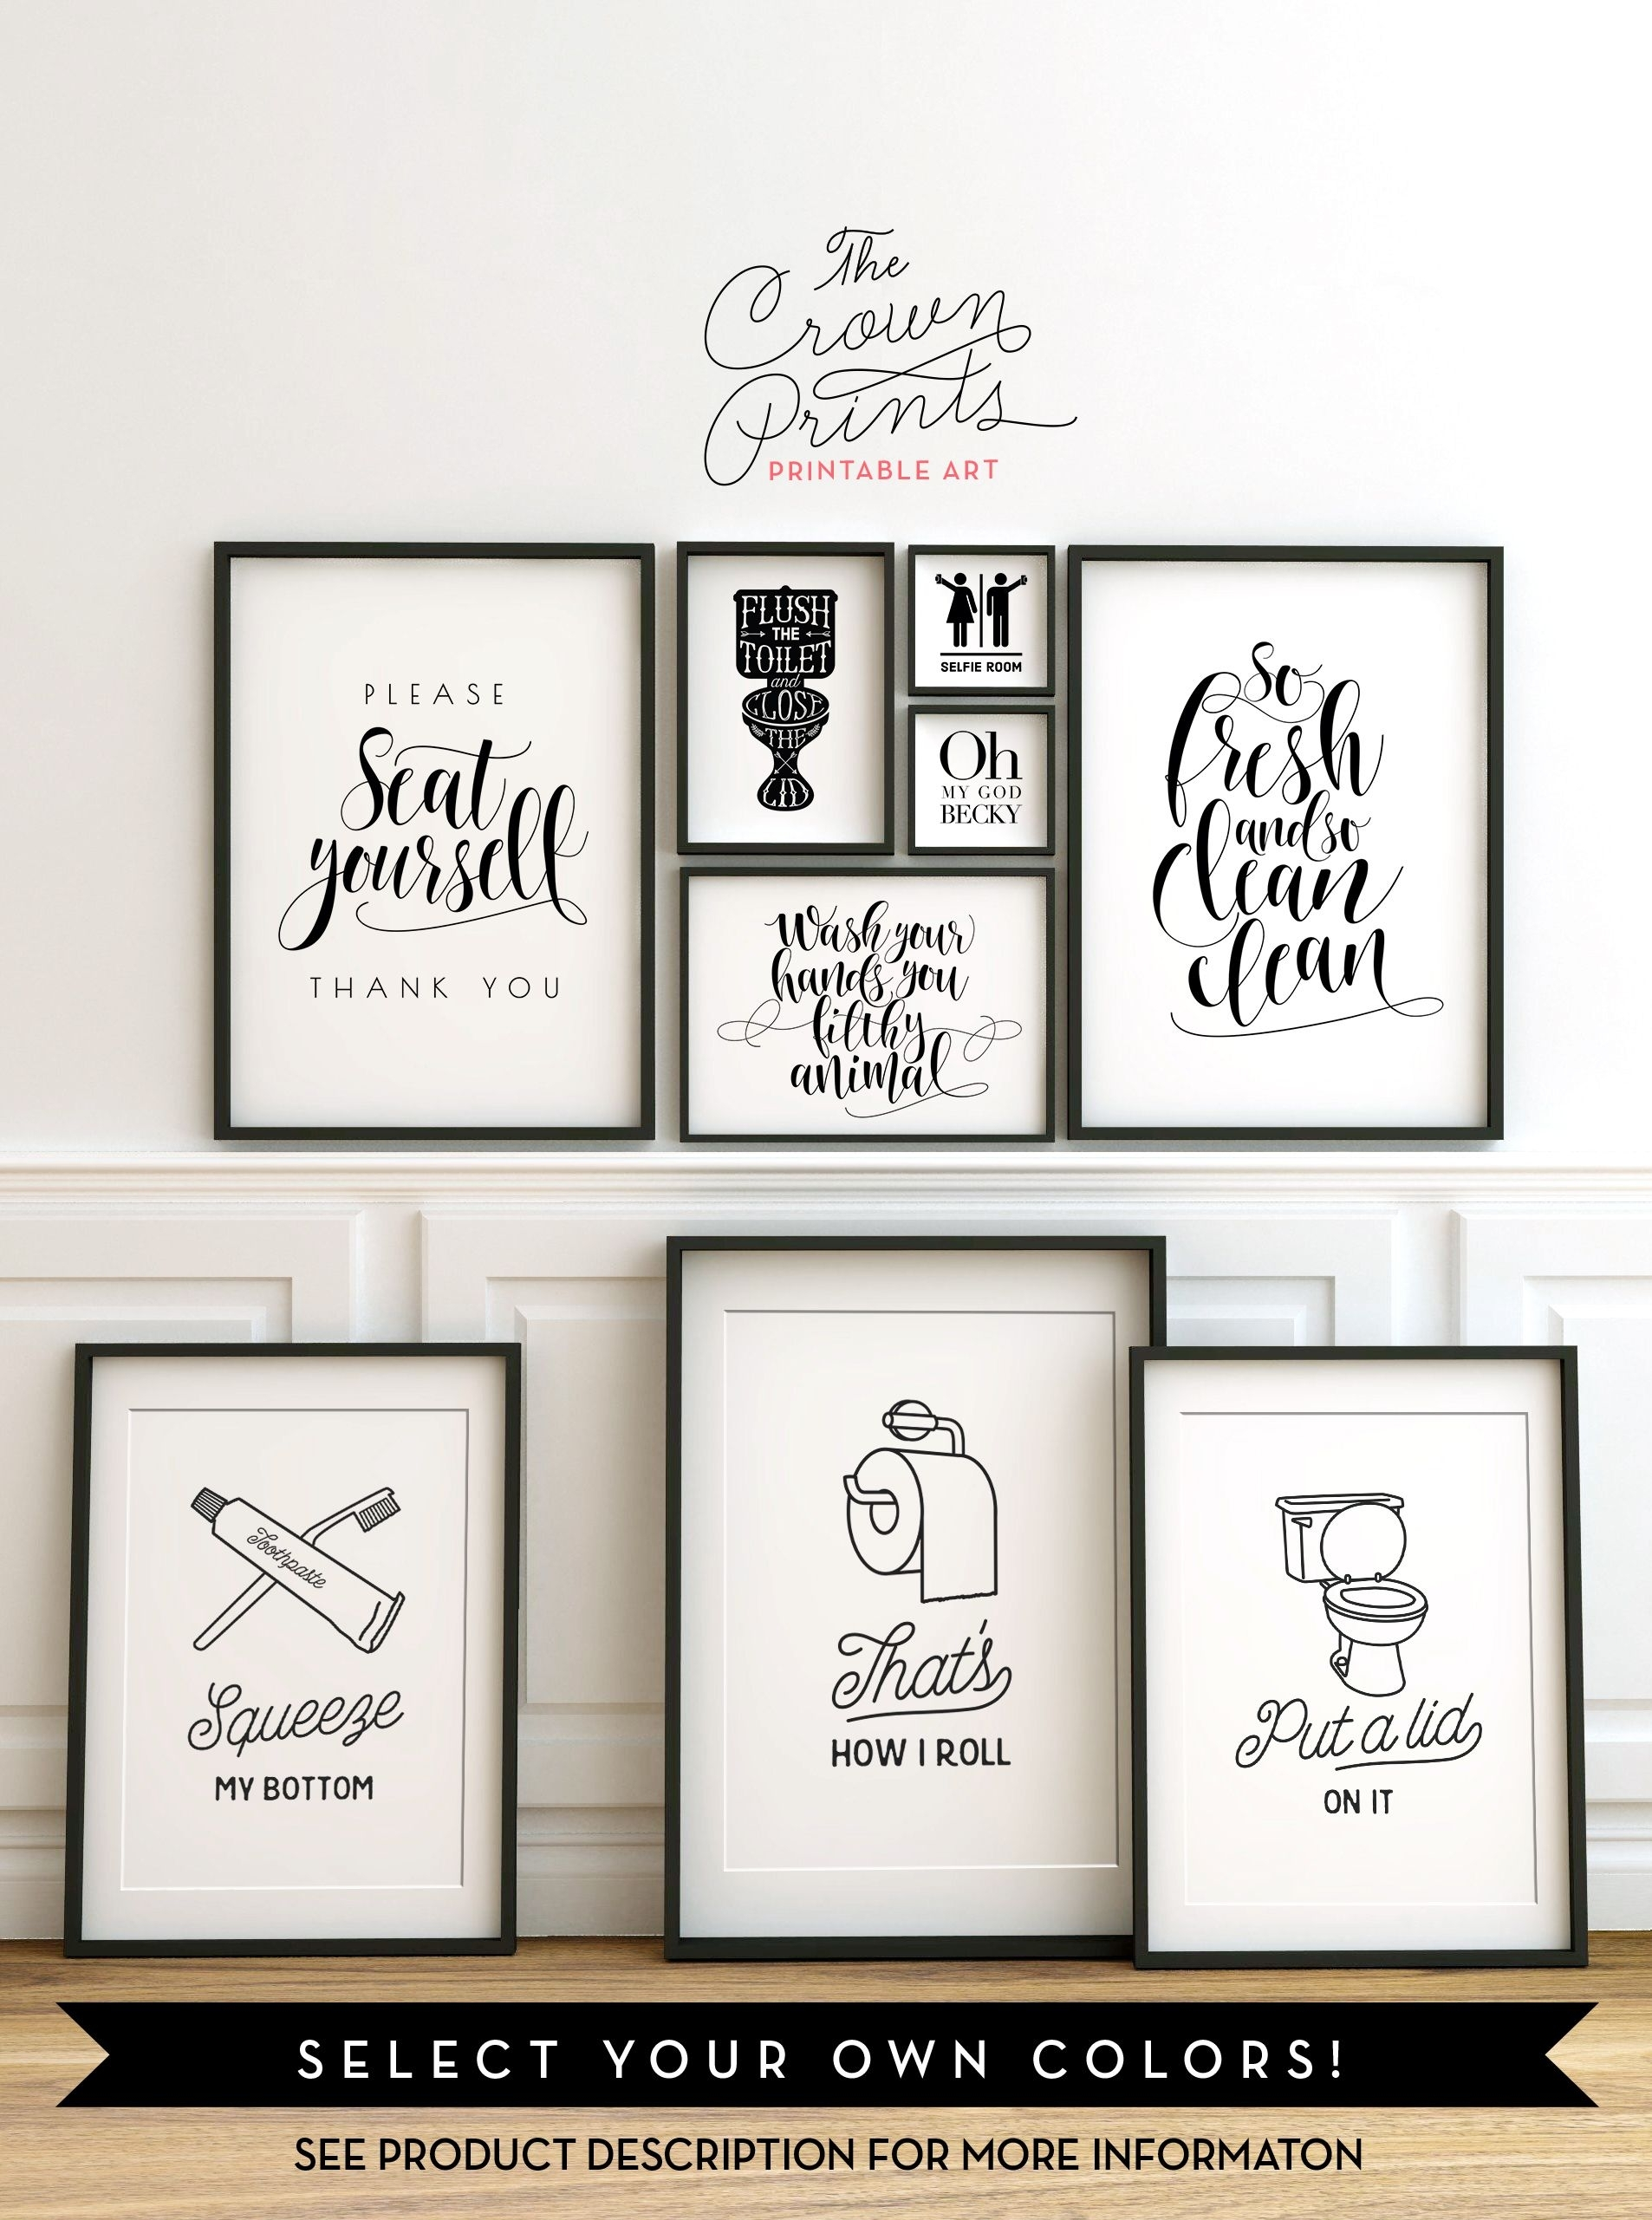 Printable Bathroom Wall Art From The Crown Prints On Etsy – Lots With Recent Vintage Bath Framed Art Prints Set Of (View 3 of 15)